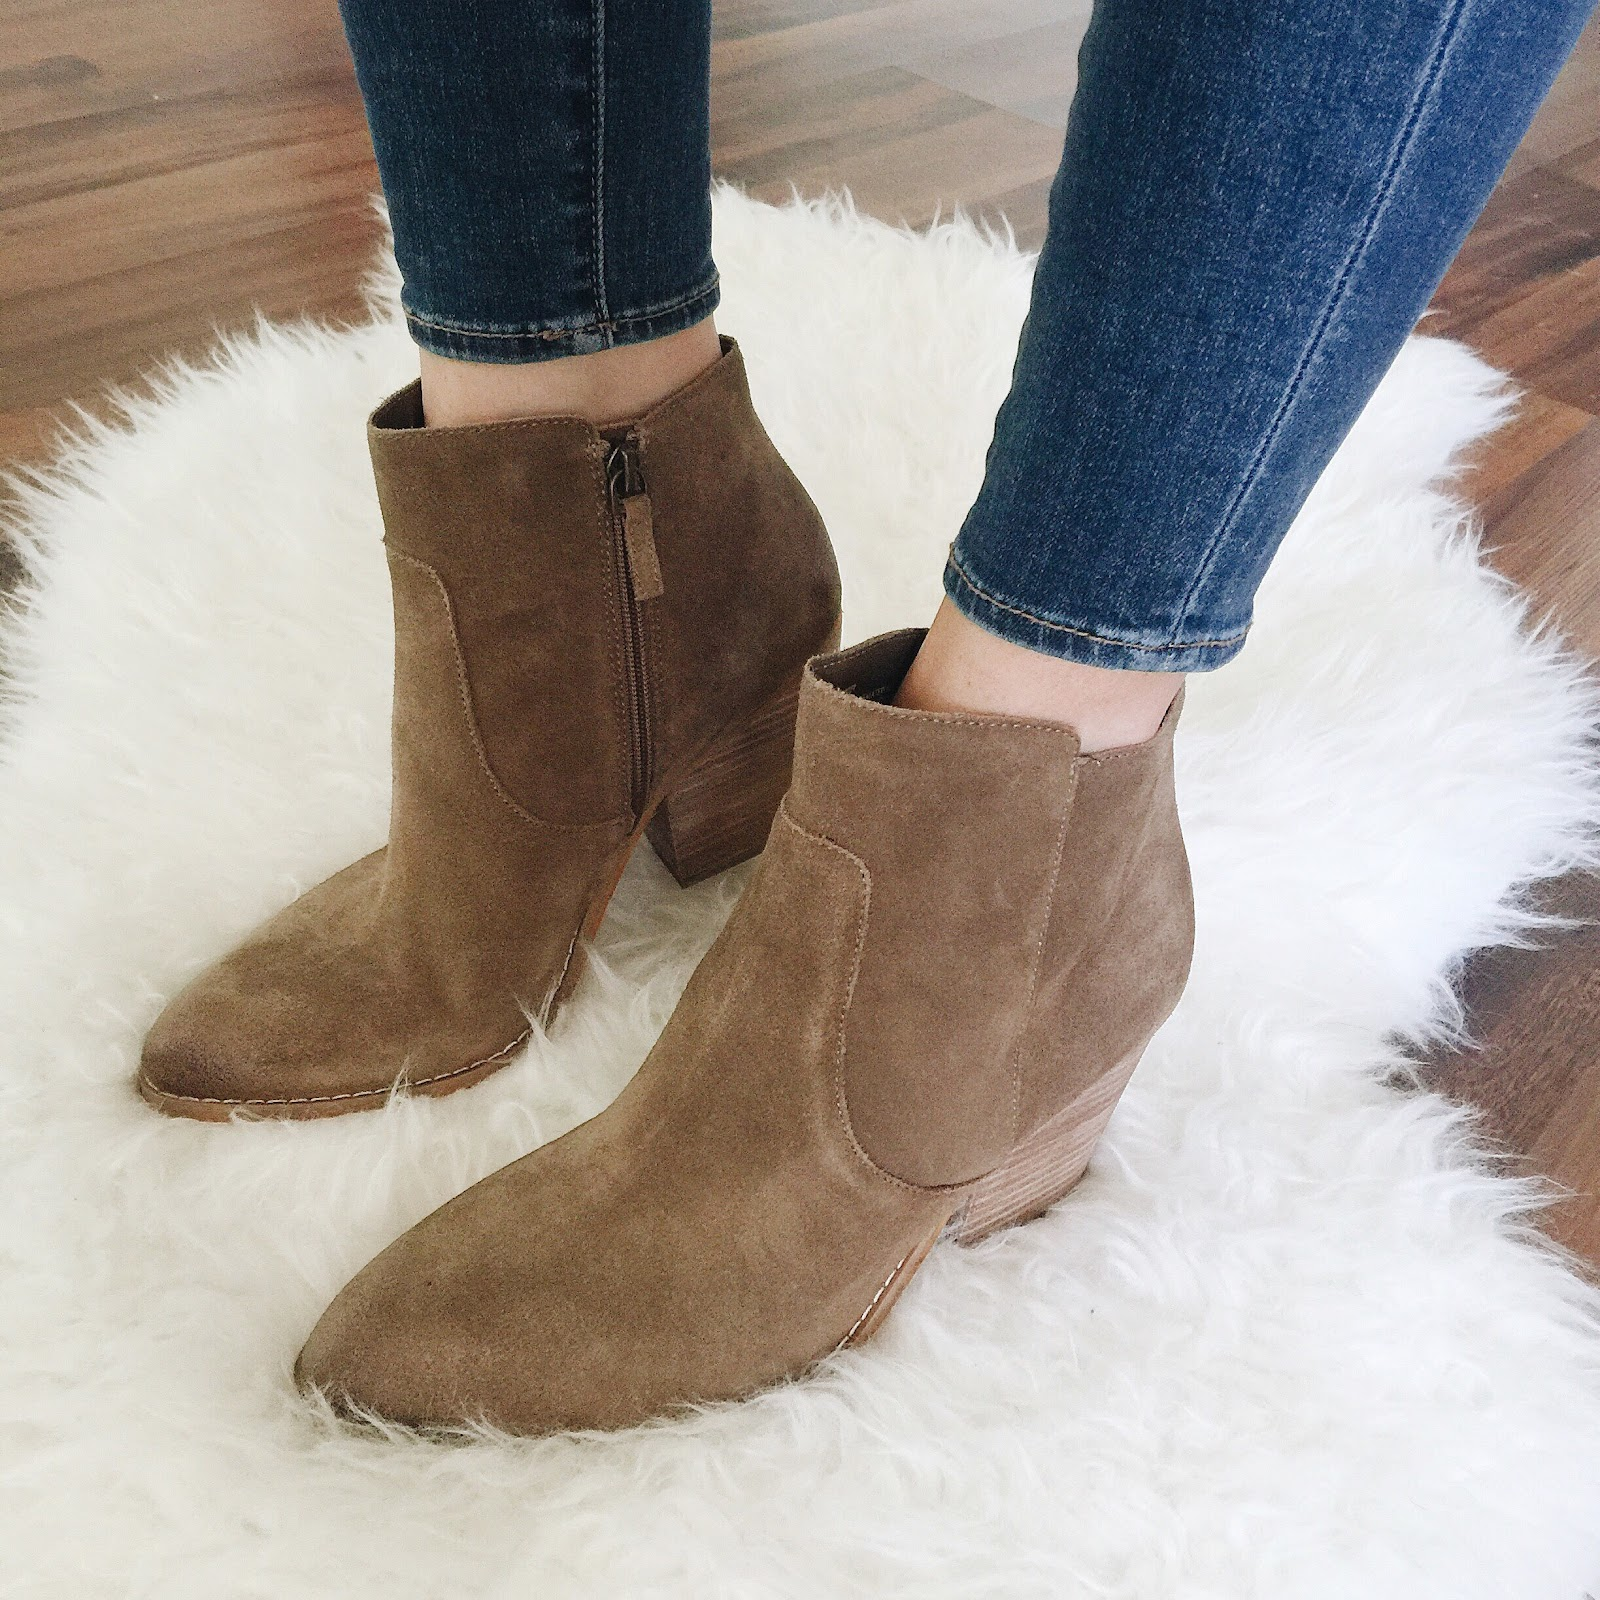 Tan suede ankle boots | Treasure&Bond 'Winsor' Bootie